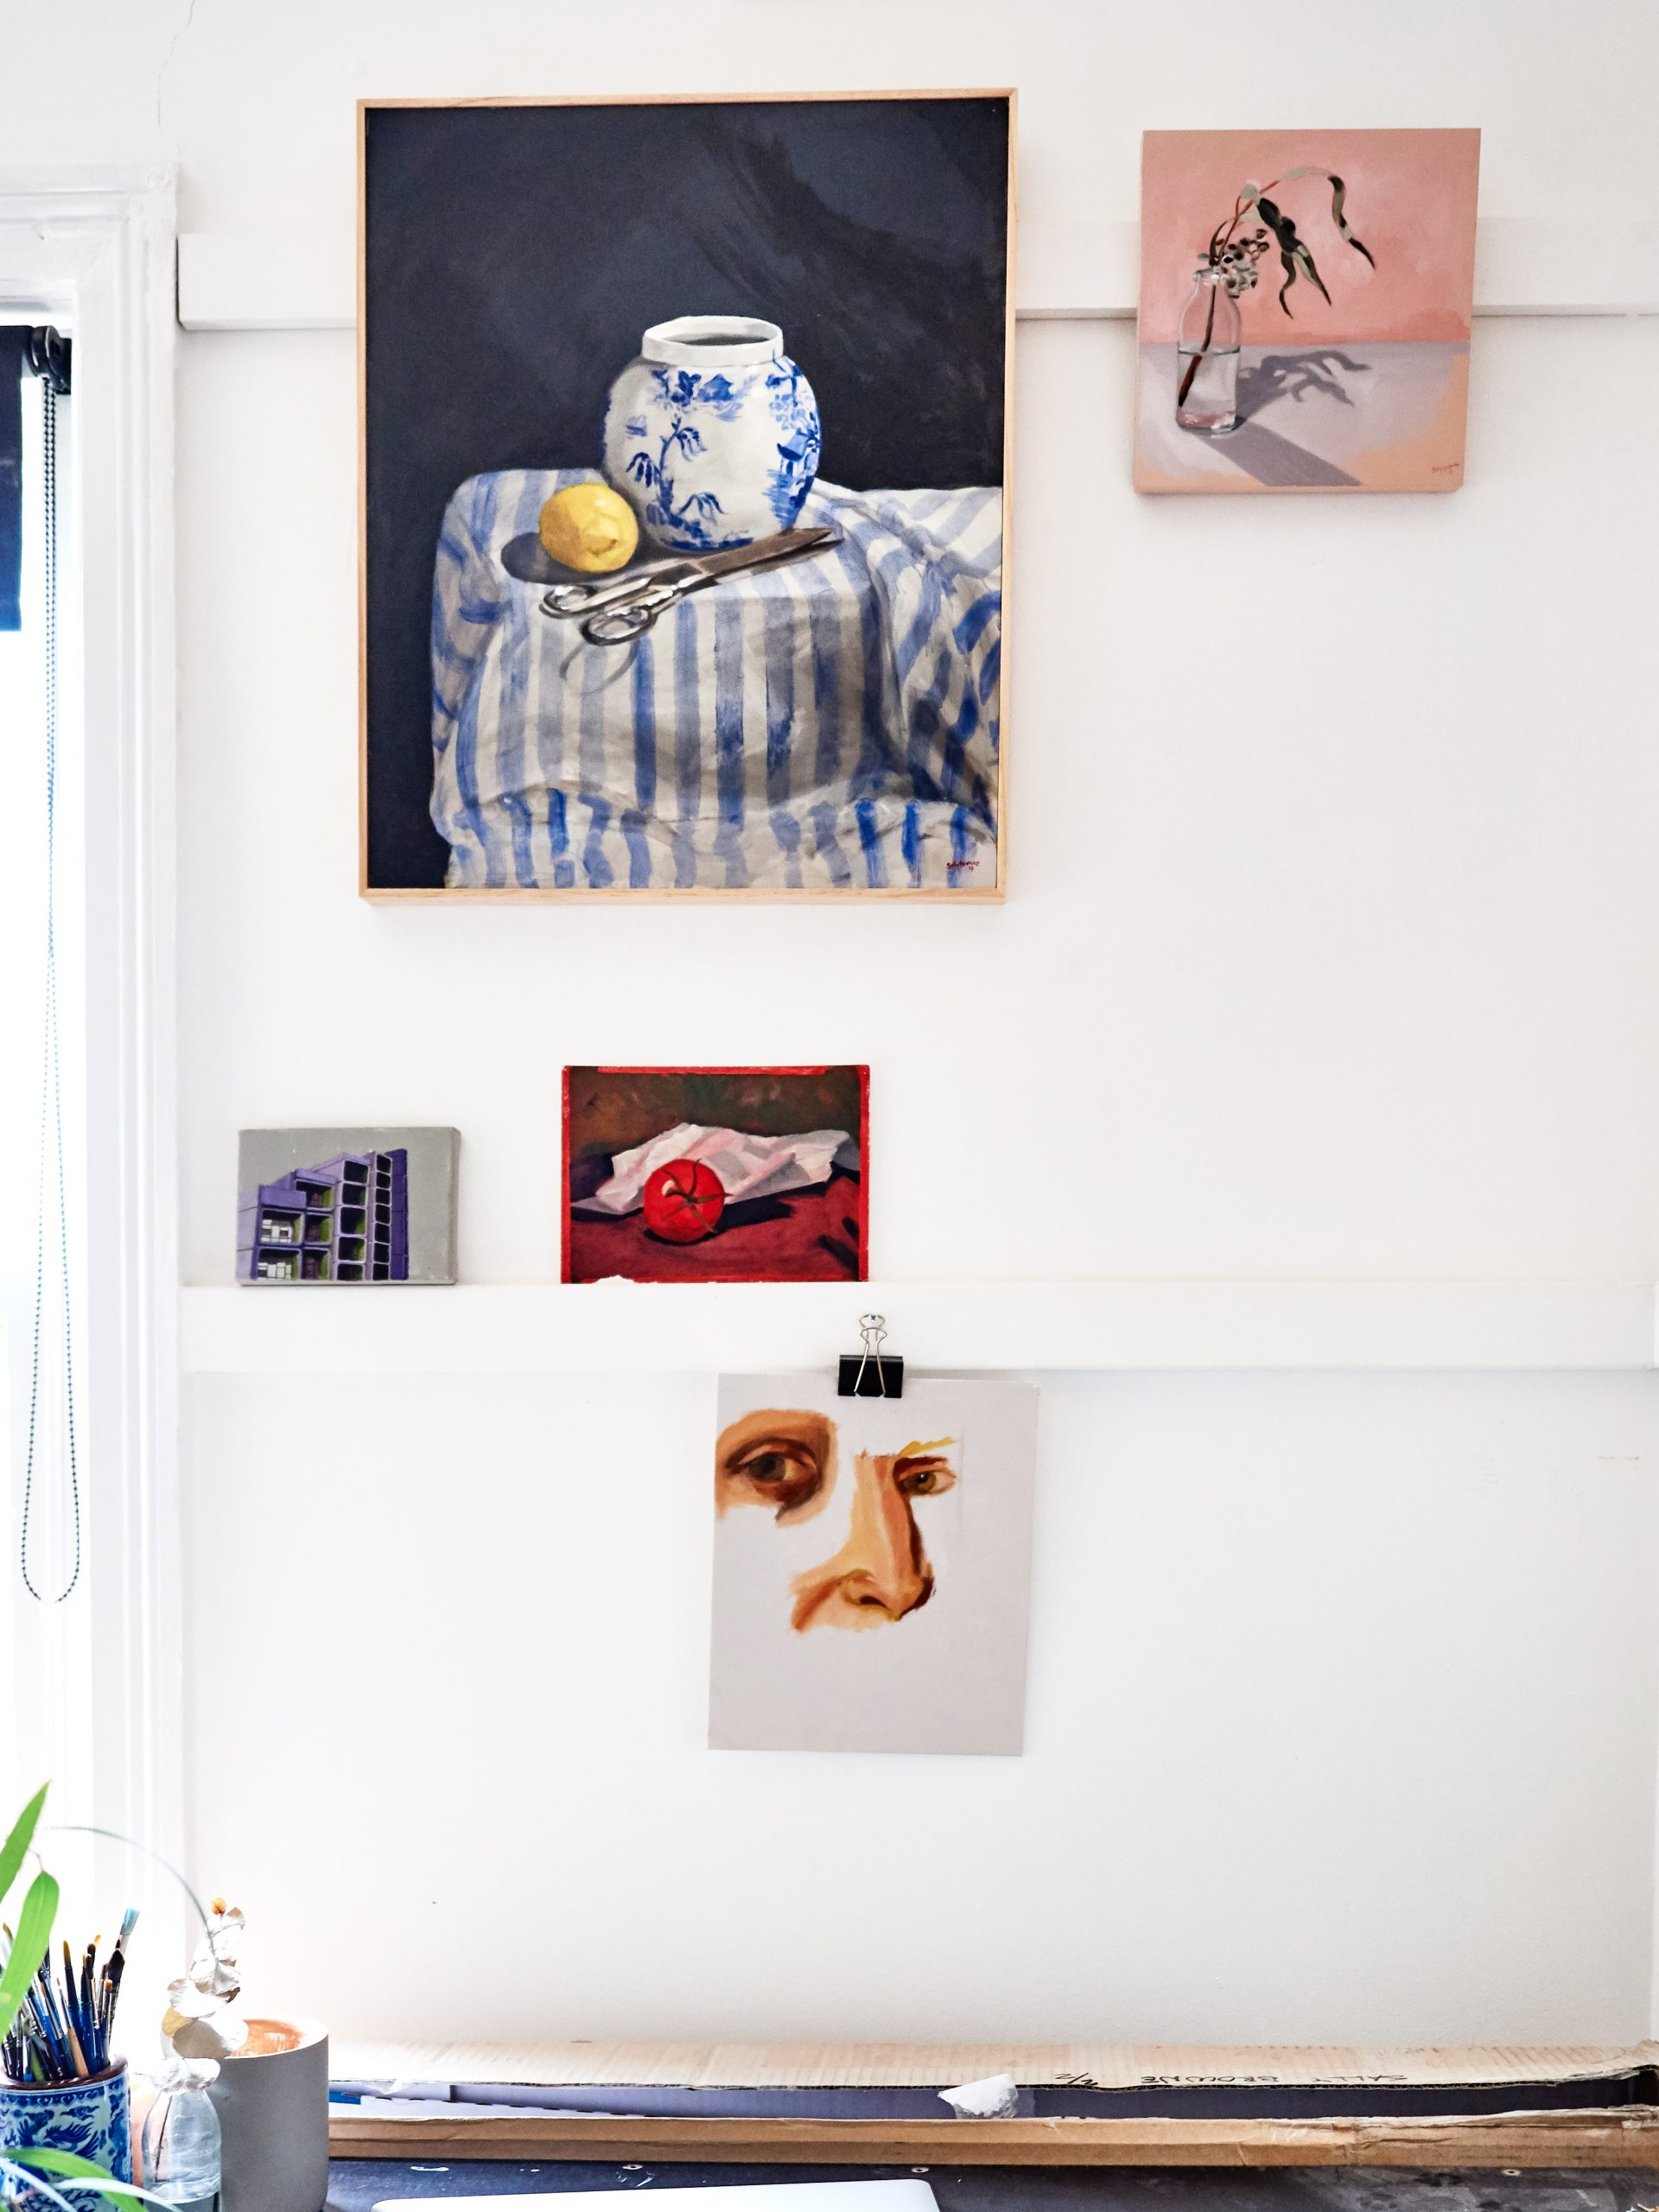 oil paint studies hanging in Sally Browne's home art studio